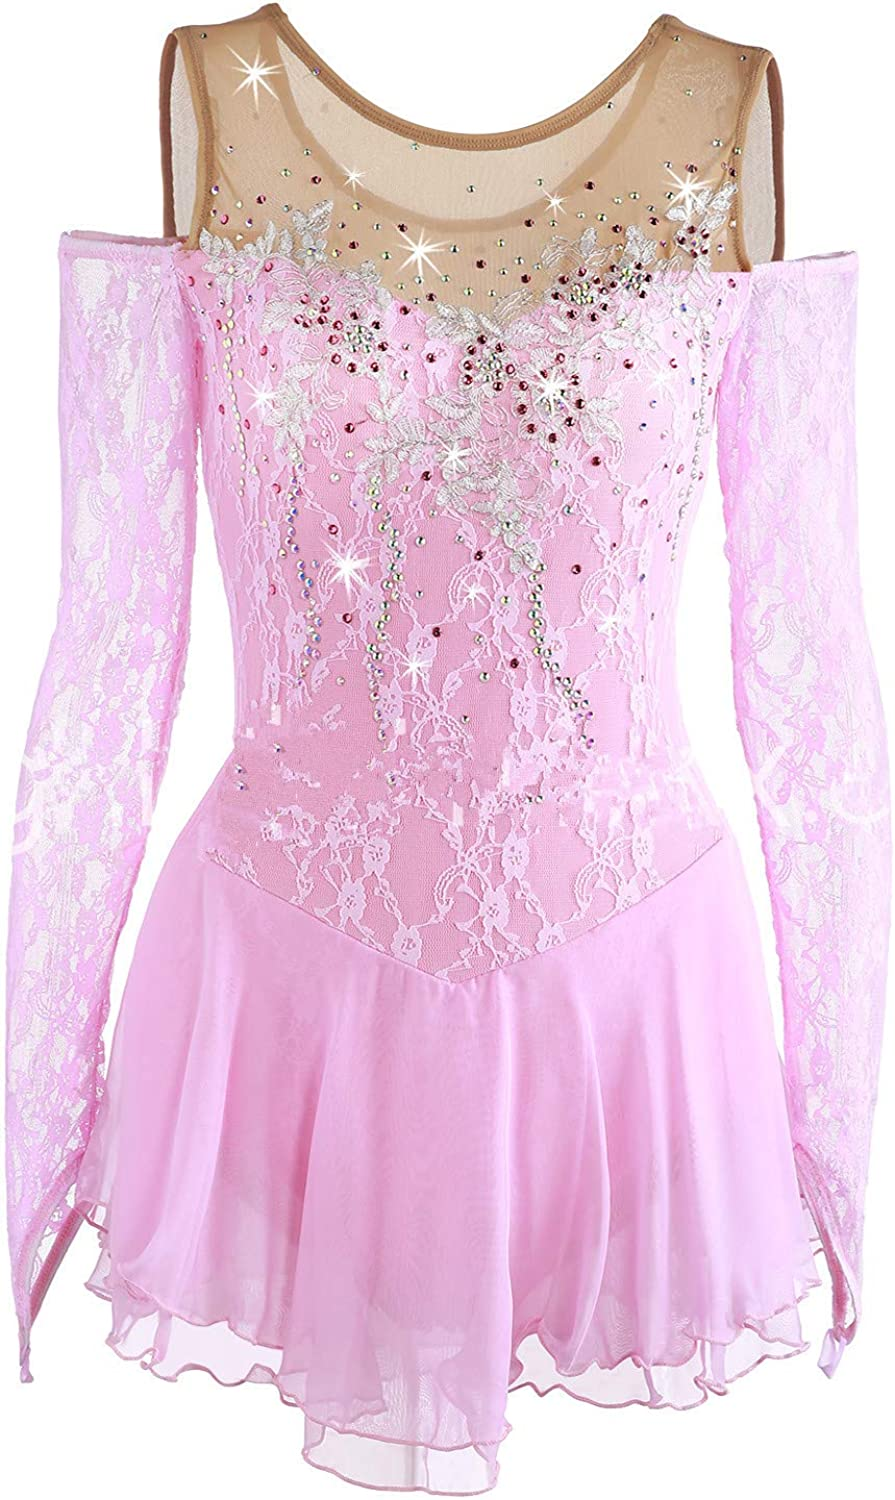 Heart&M Ice Skating Dress For Girls, Handmade Figure Skating Competition Performance Costume With Lace Long Sleeved Pink